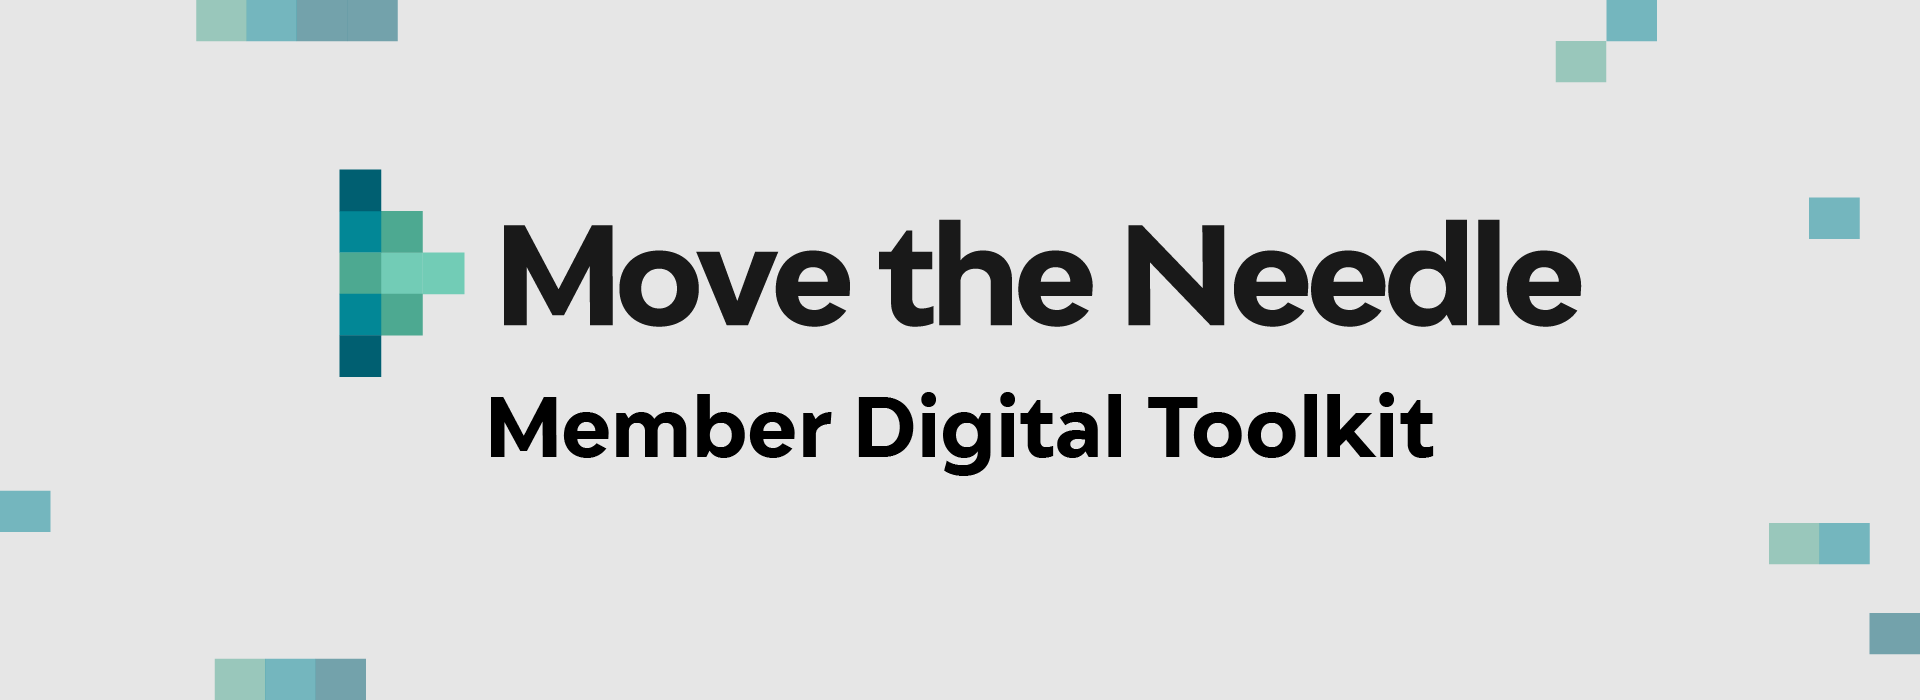 Move the Needle - Digital Toolkit